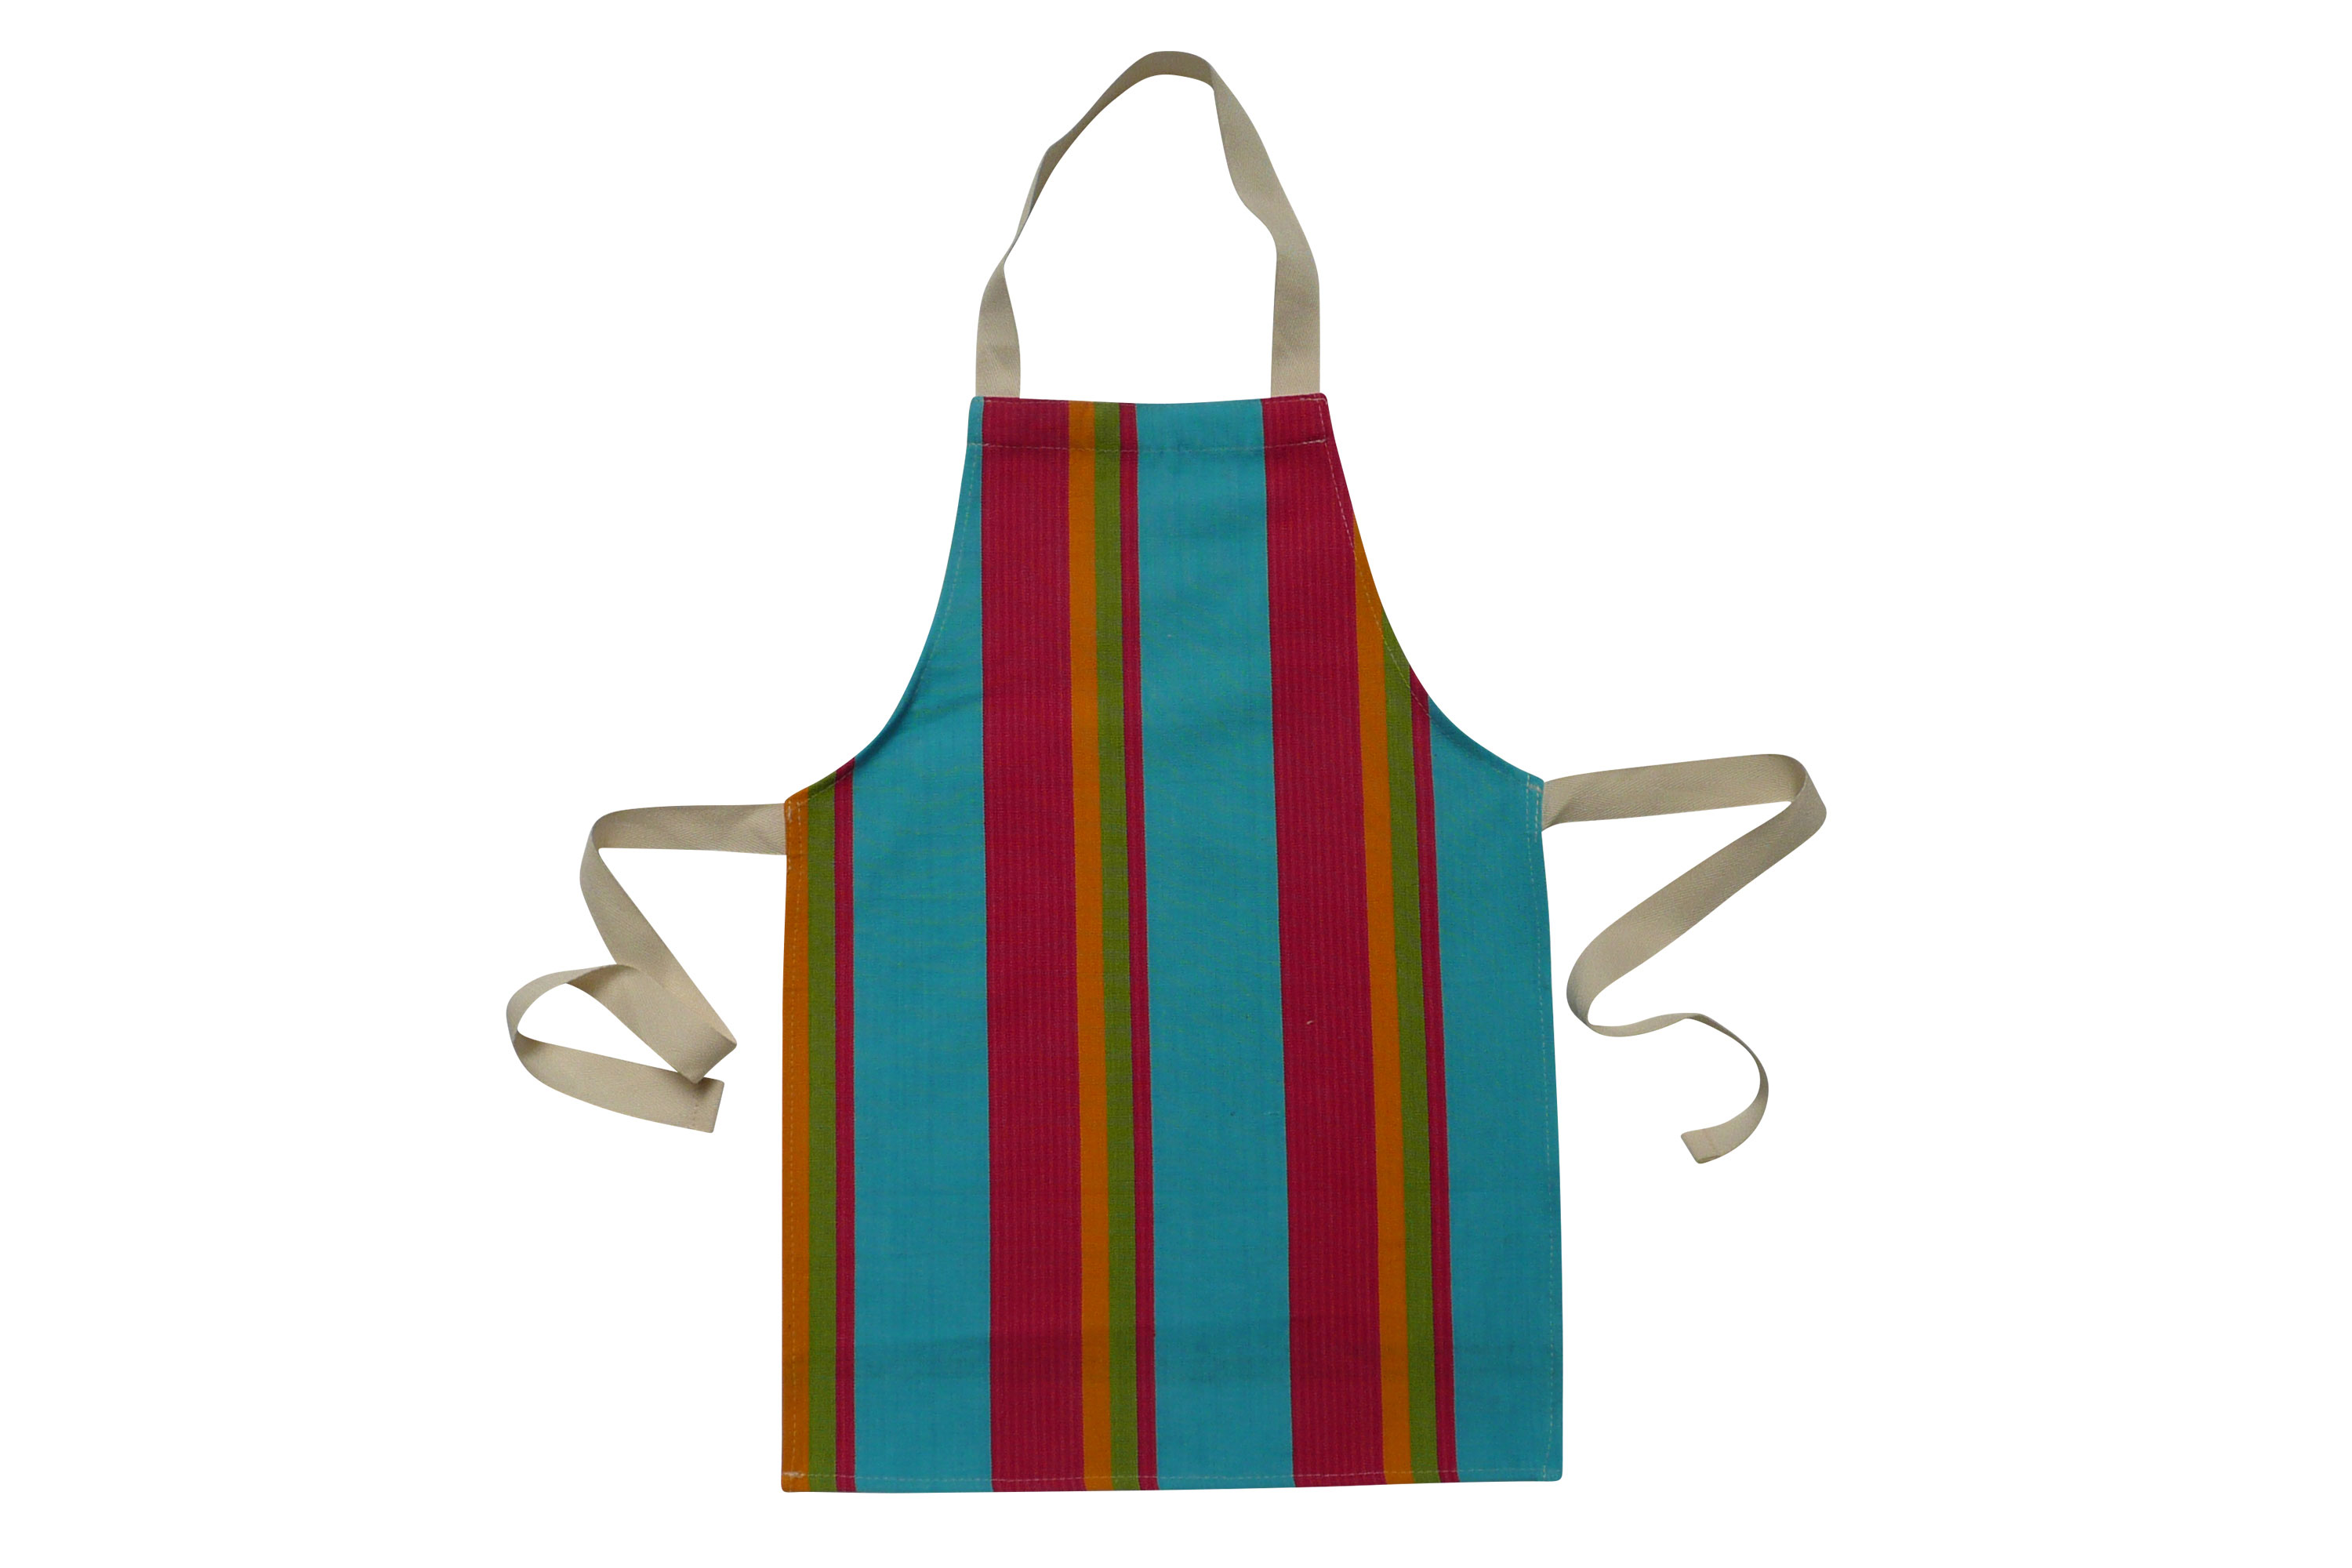 Toddlers Aprons - Striped Aprons For Small Childrenpink, turquoise, yellow